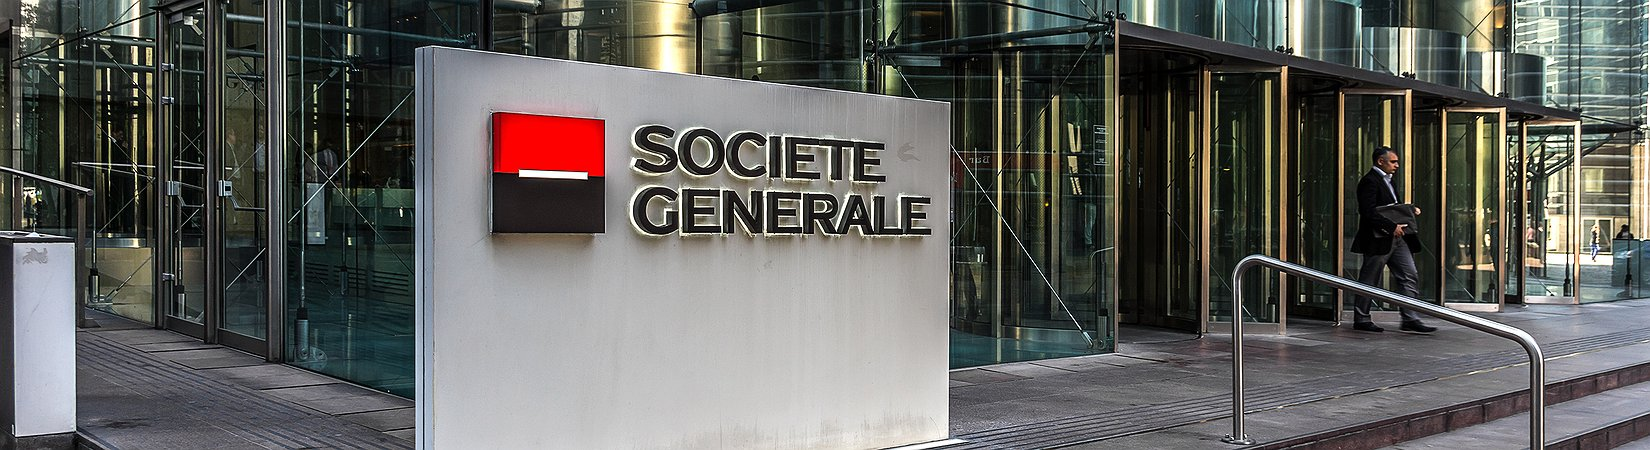 Institution societe generale sfh